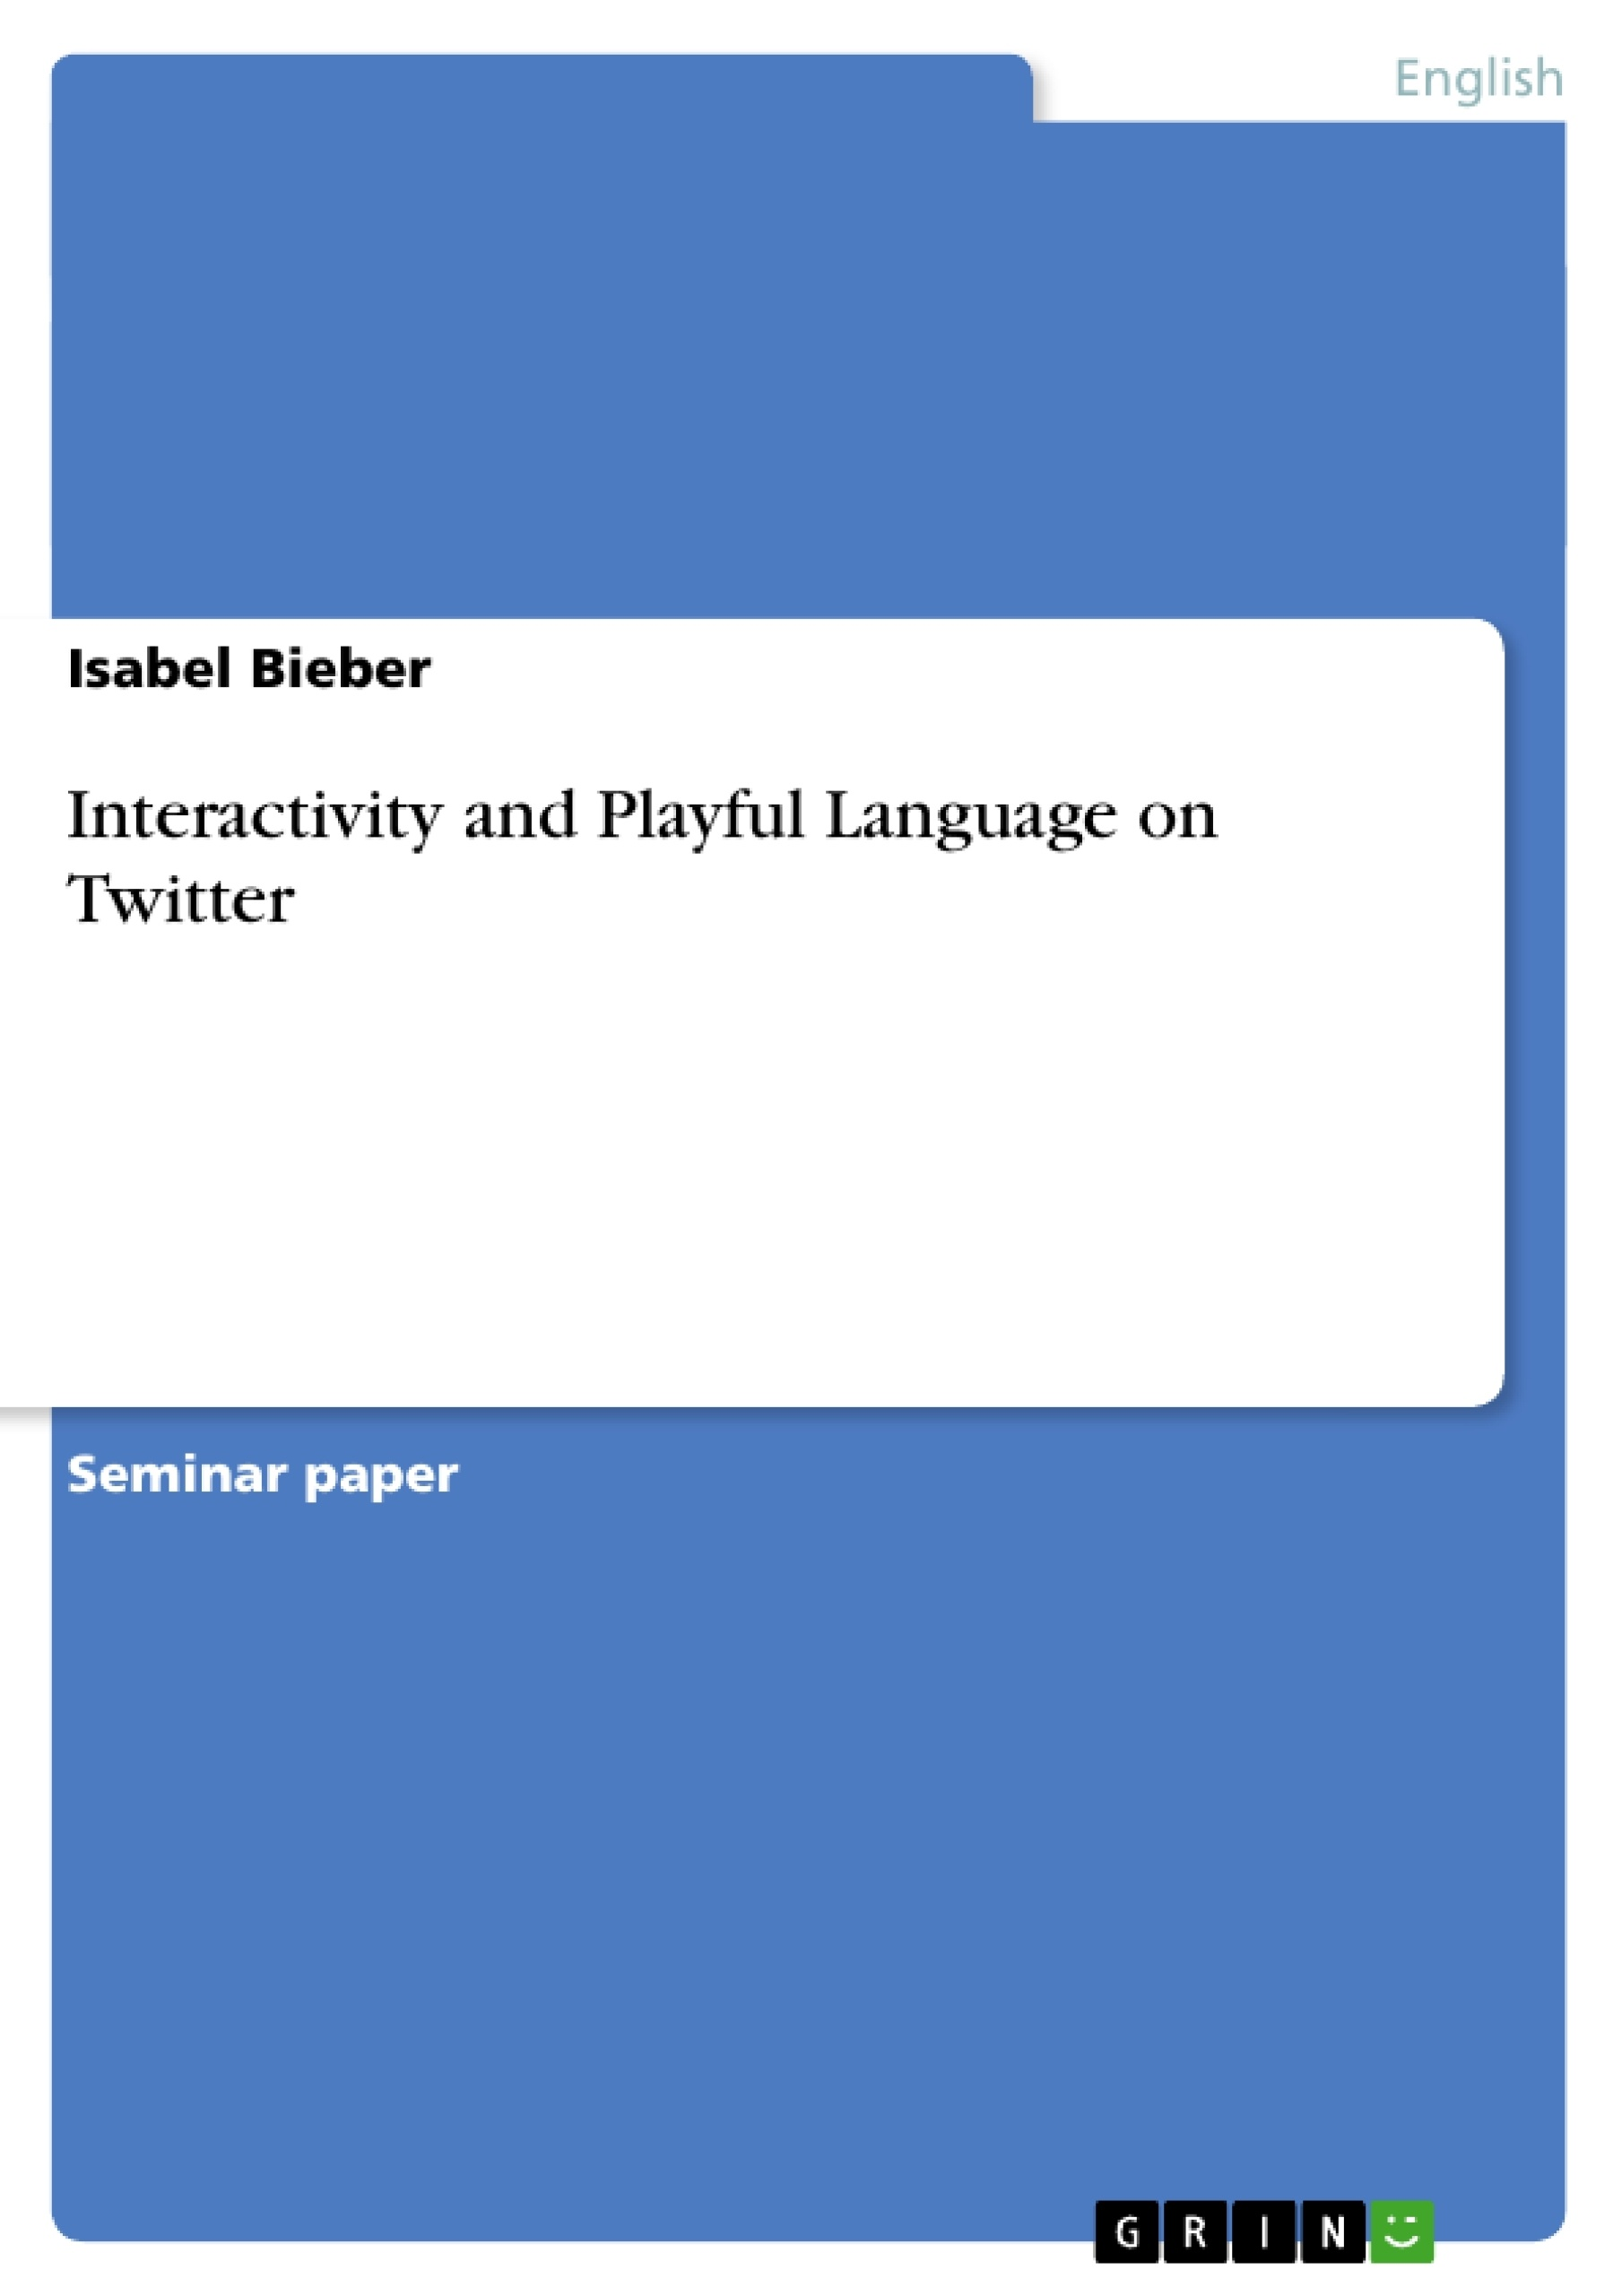 Title: Interactivity and Playful Language on Twitter